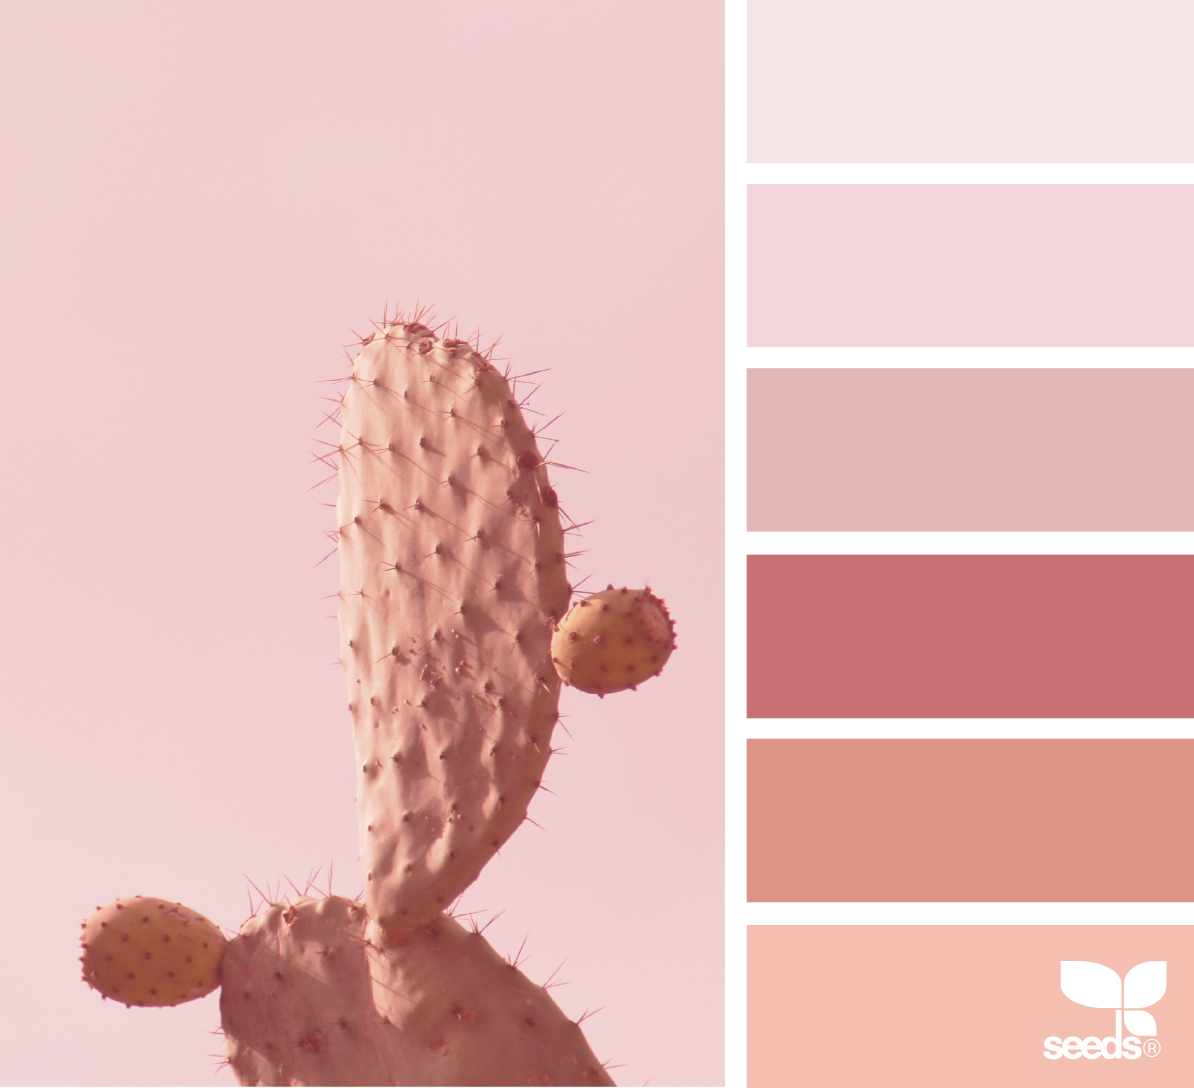 Cacti Tones | Graphic Color | Pinterest | Cacti, Seeds and Design seeds